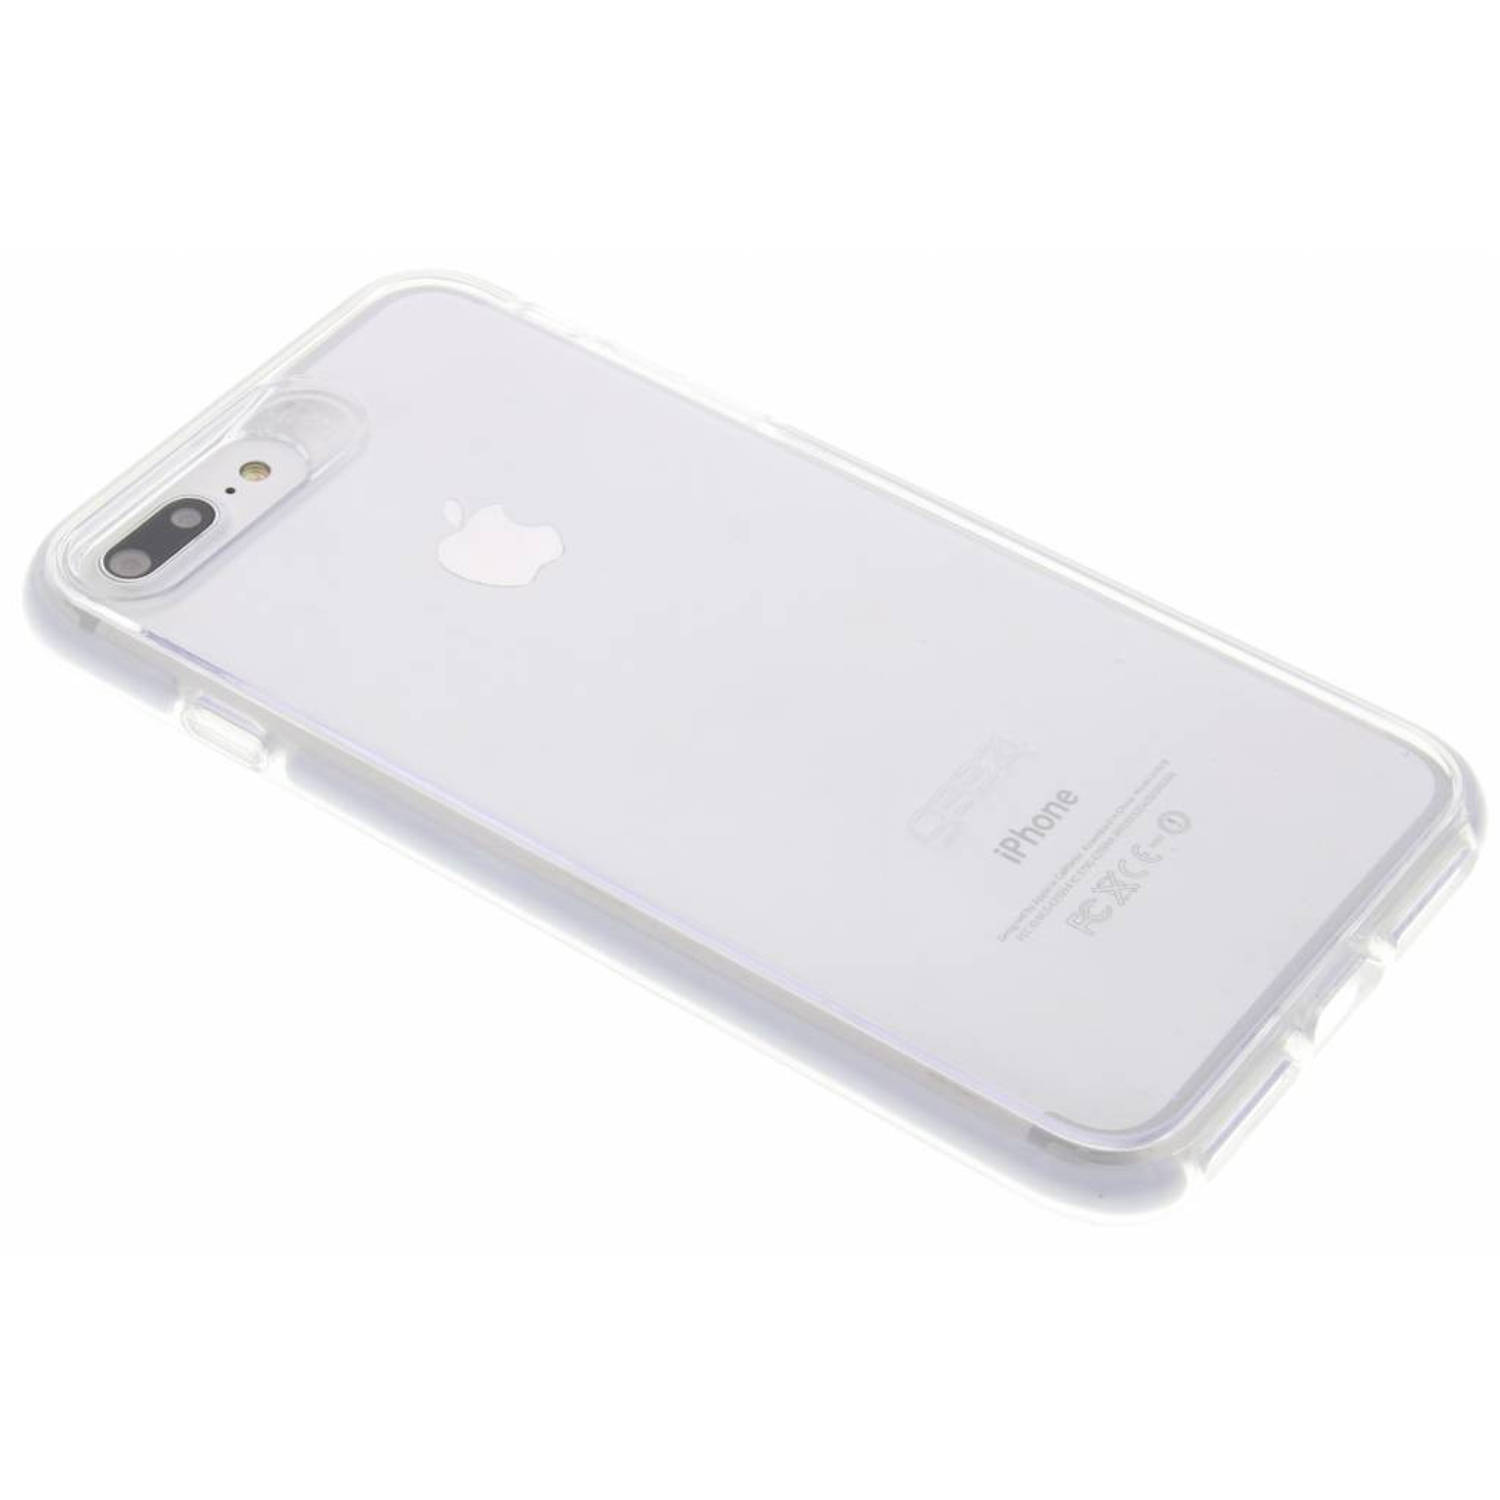 D3O Piccadilly Case voor de iPhone 8 Plus / 7 Plus - Zilver